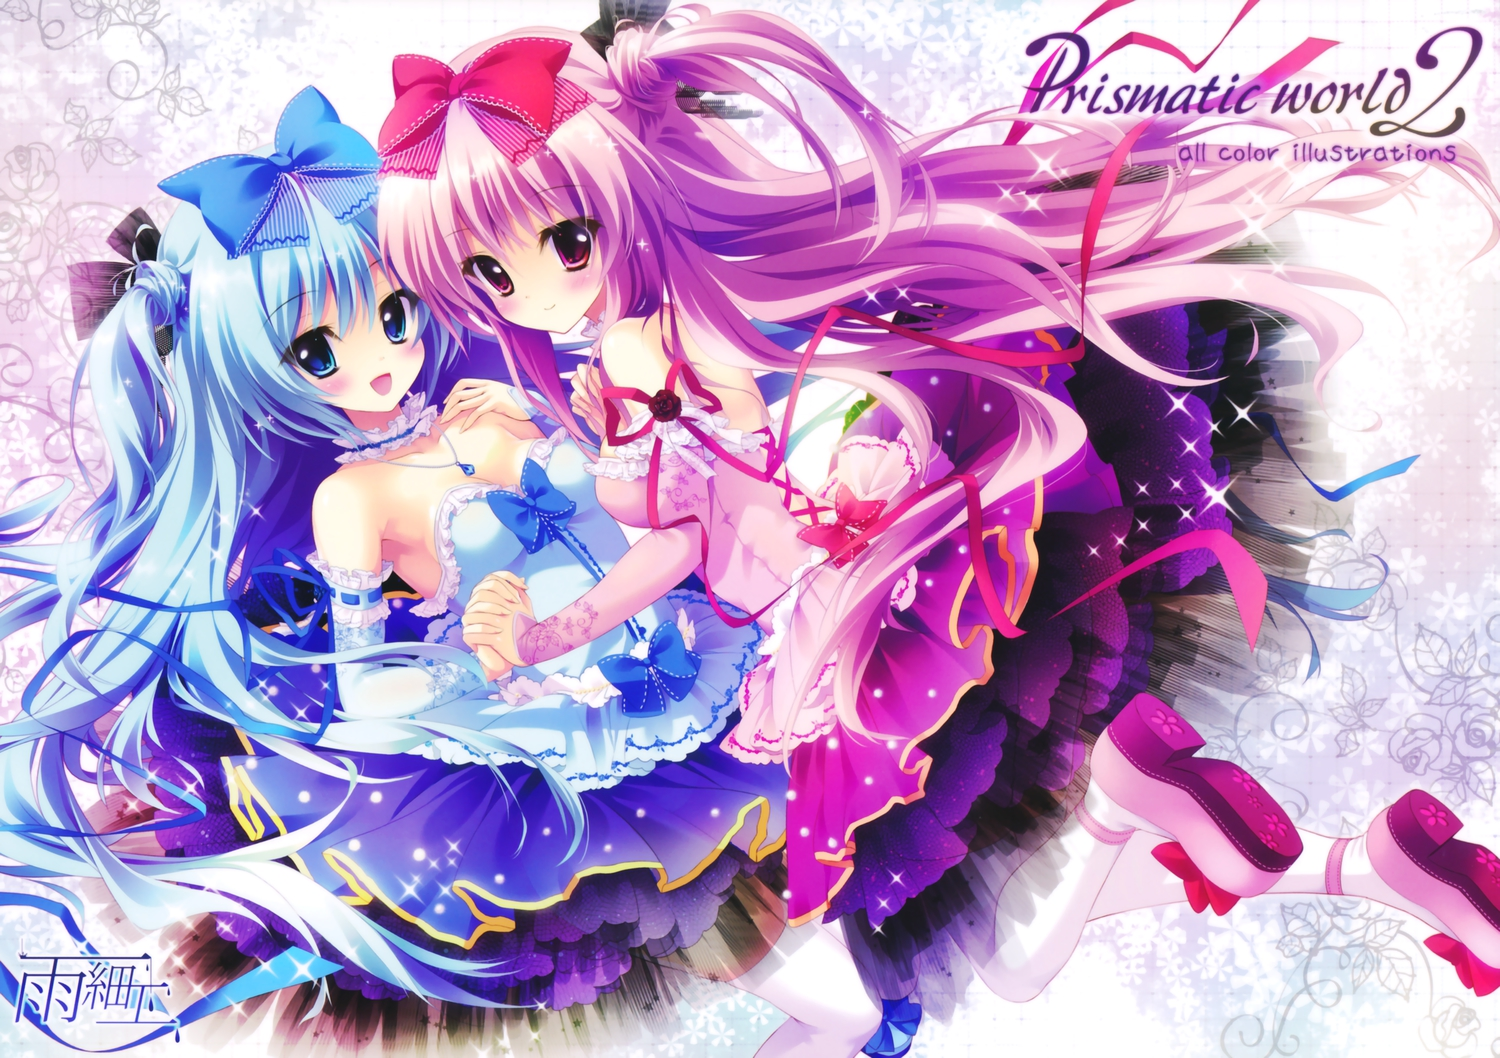 2girls blue_hair dress long_hair original pink_hair shiramori_yuse thighhighs